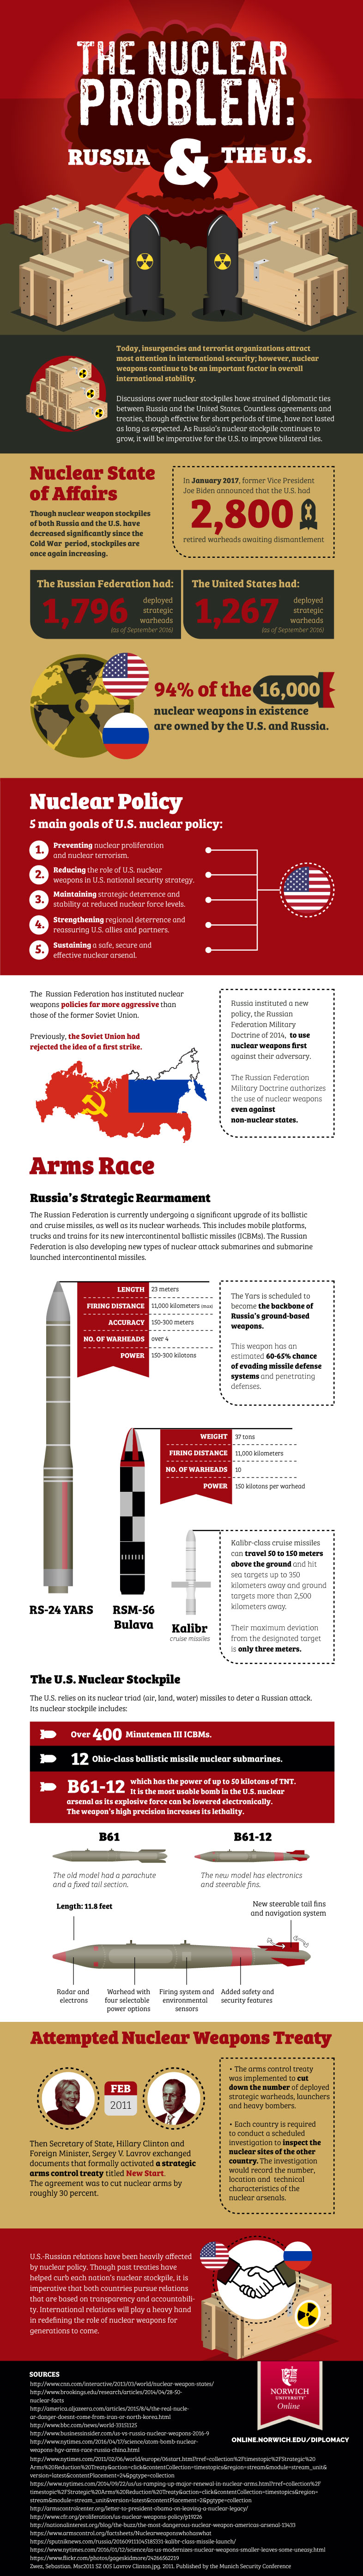 infographic about the nuclear state of affairs, russia and the united states